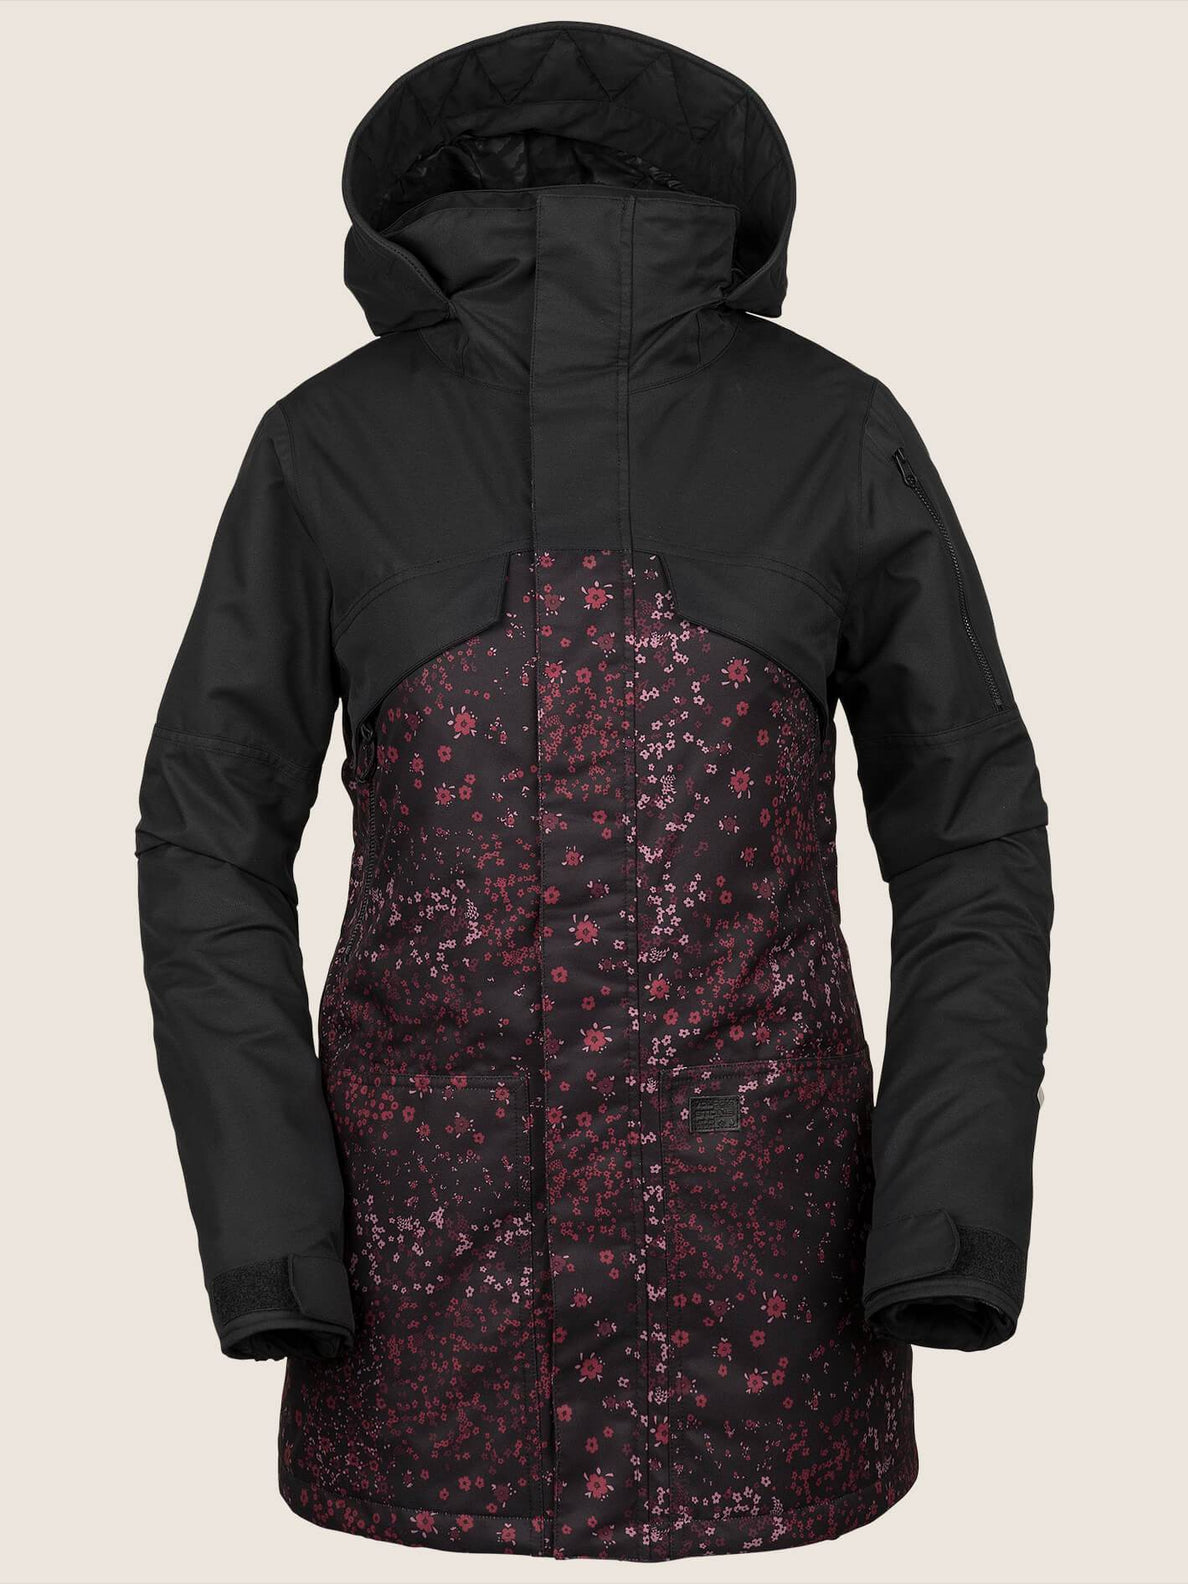 Vault 3-In-1 Jacket - Black Floral Print